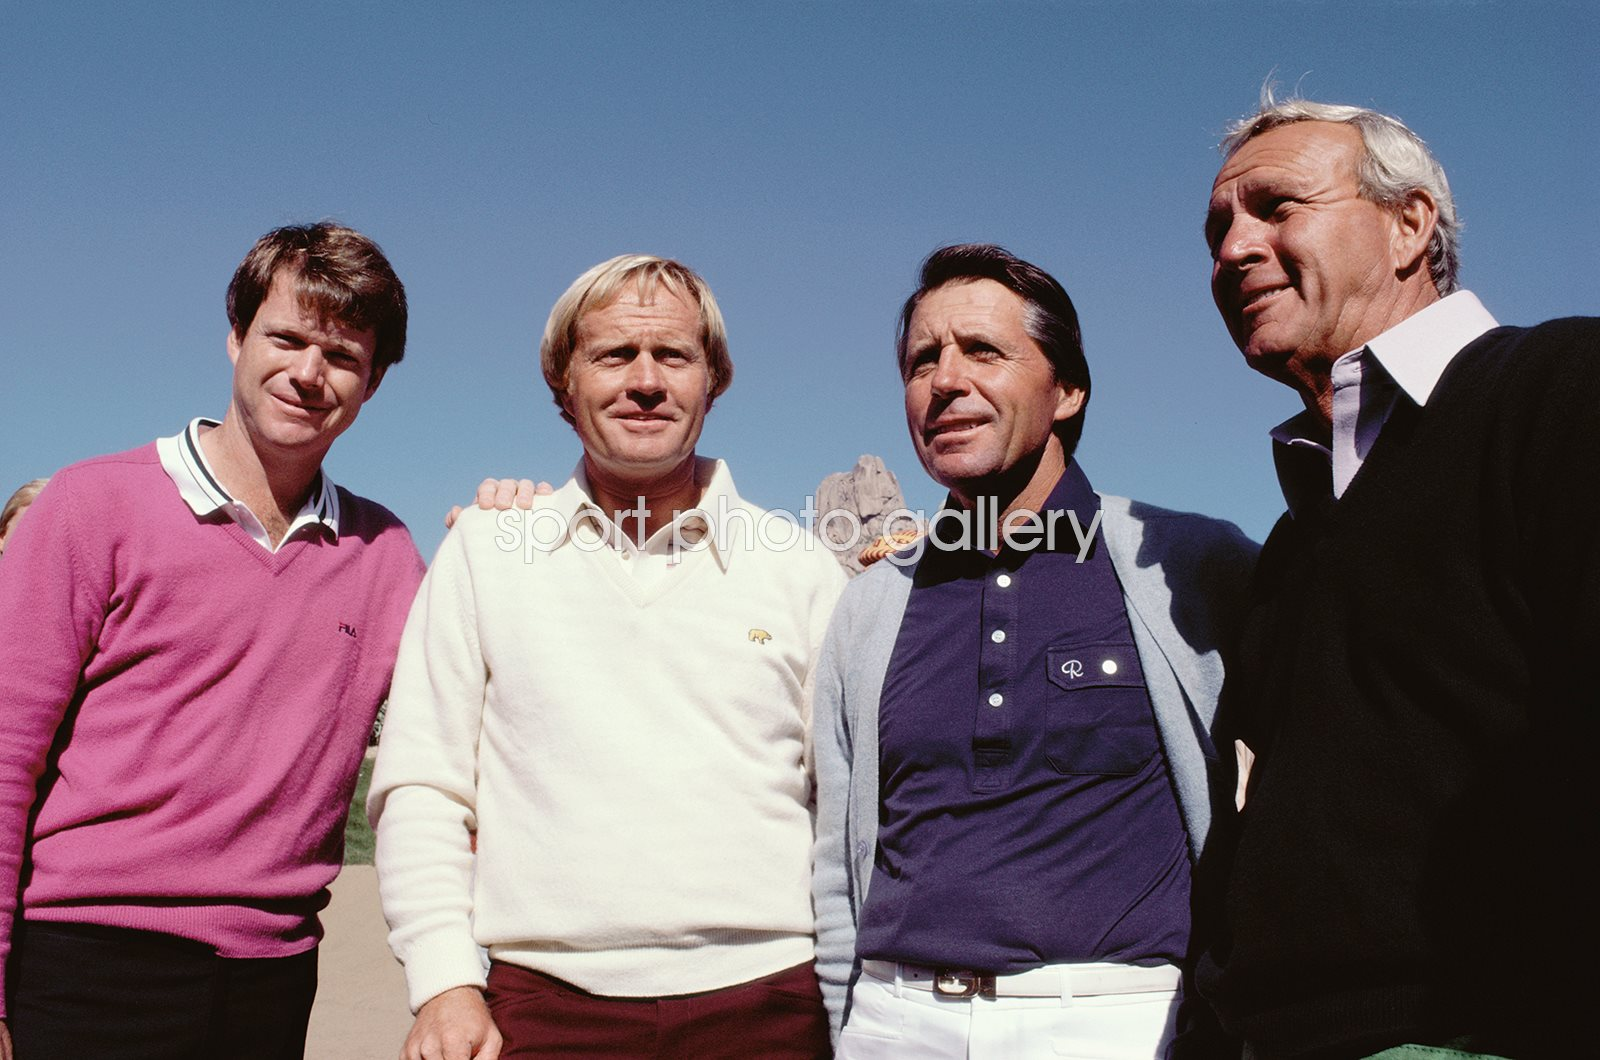 Tom Watson, Jack Nicklaus, Gary Player & Arnold Palmer 1983